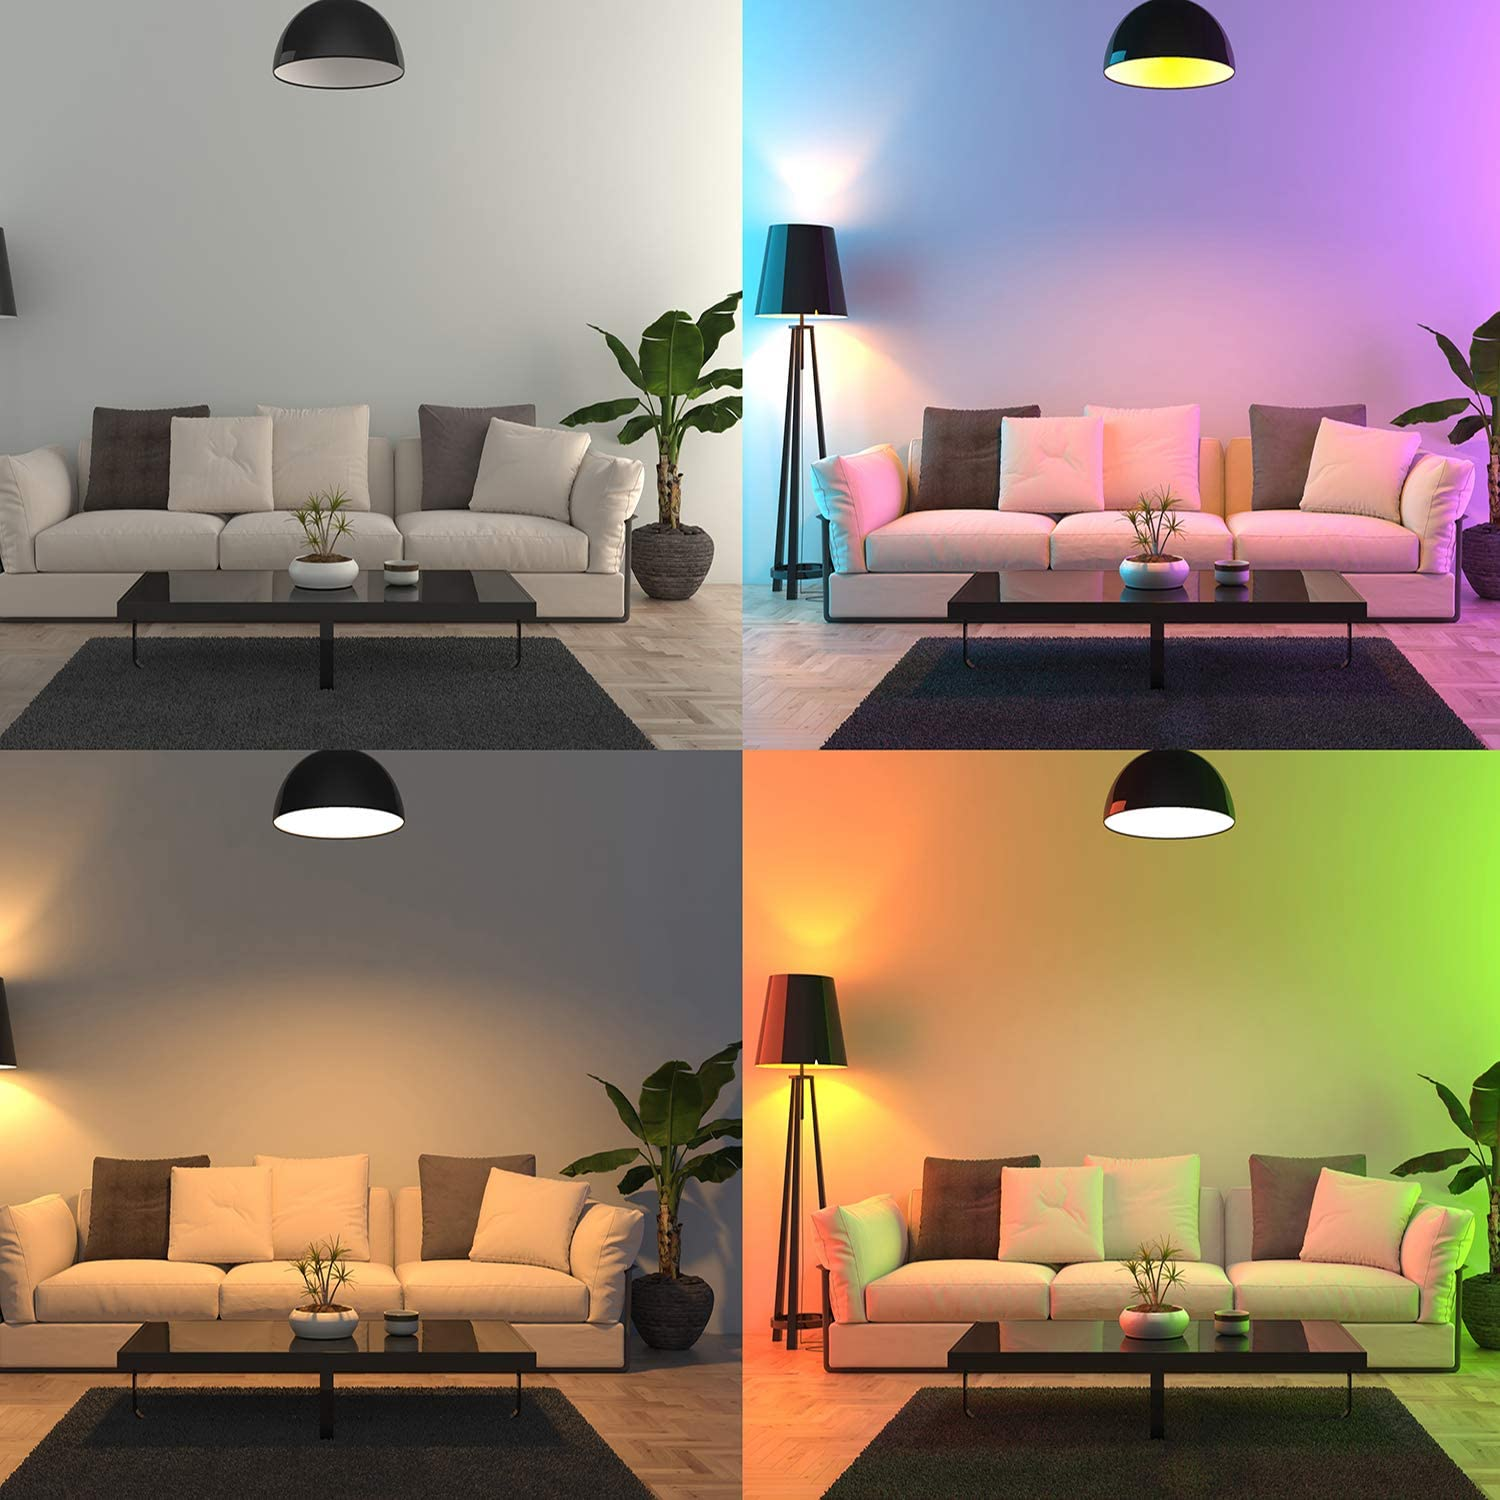 The same living room lit in four different colors by Vgogfly color-changing light bulbs.